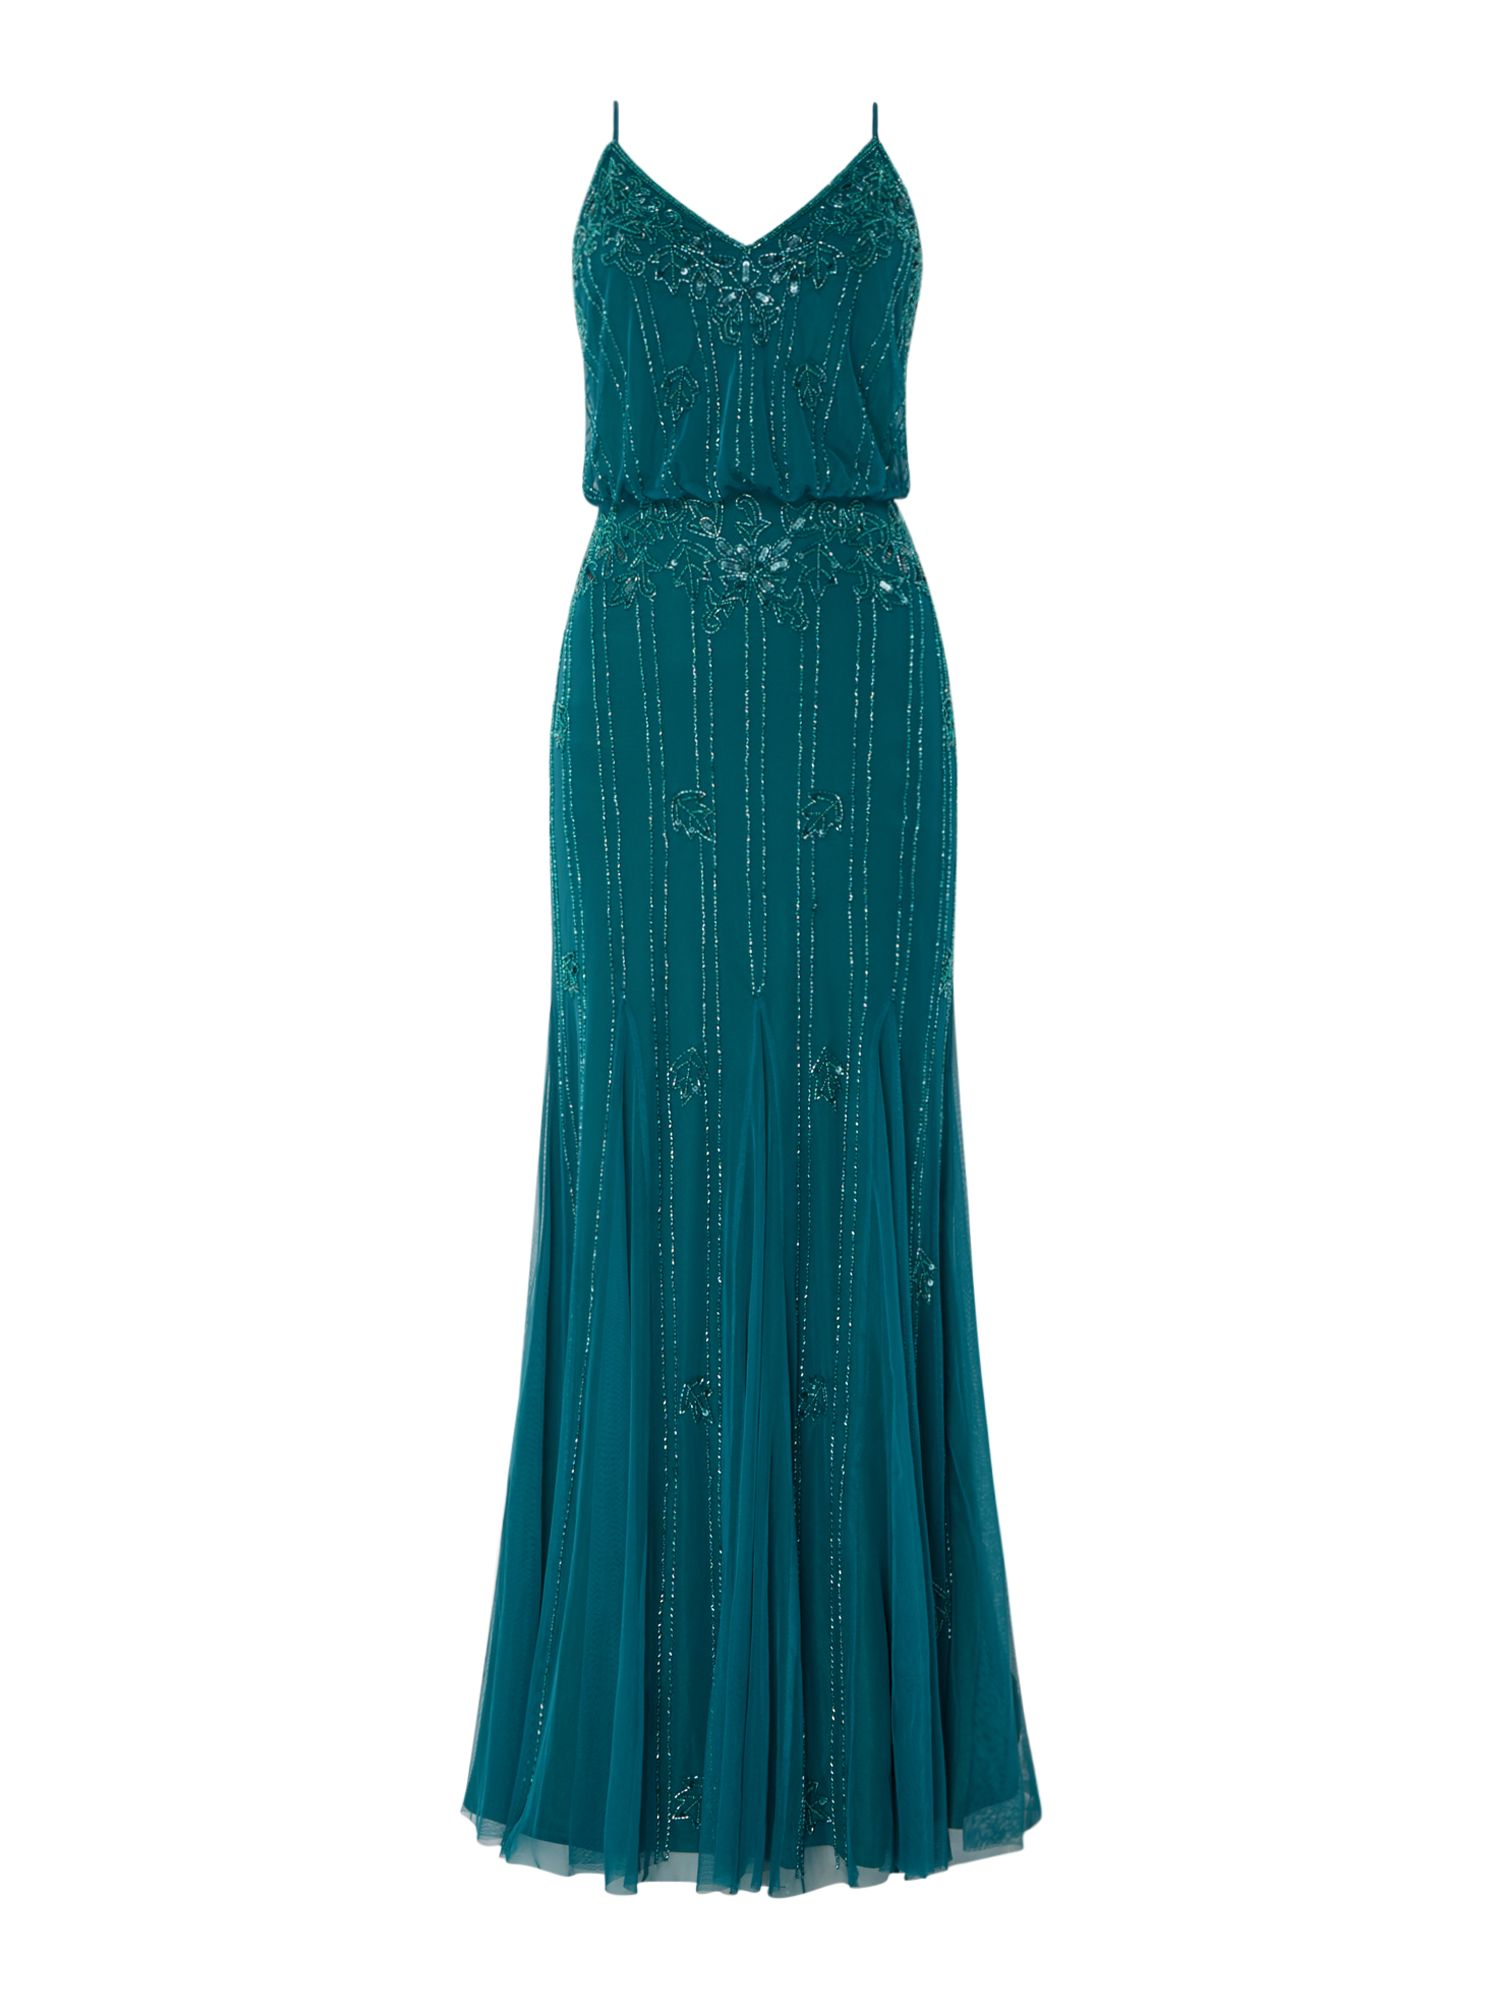 Lace and Beads blouson embellished maxi dress, Green